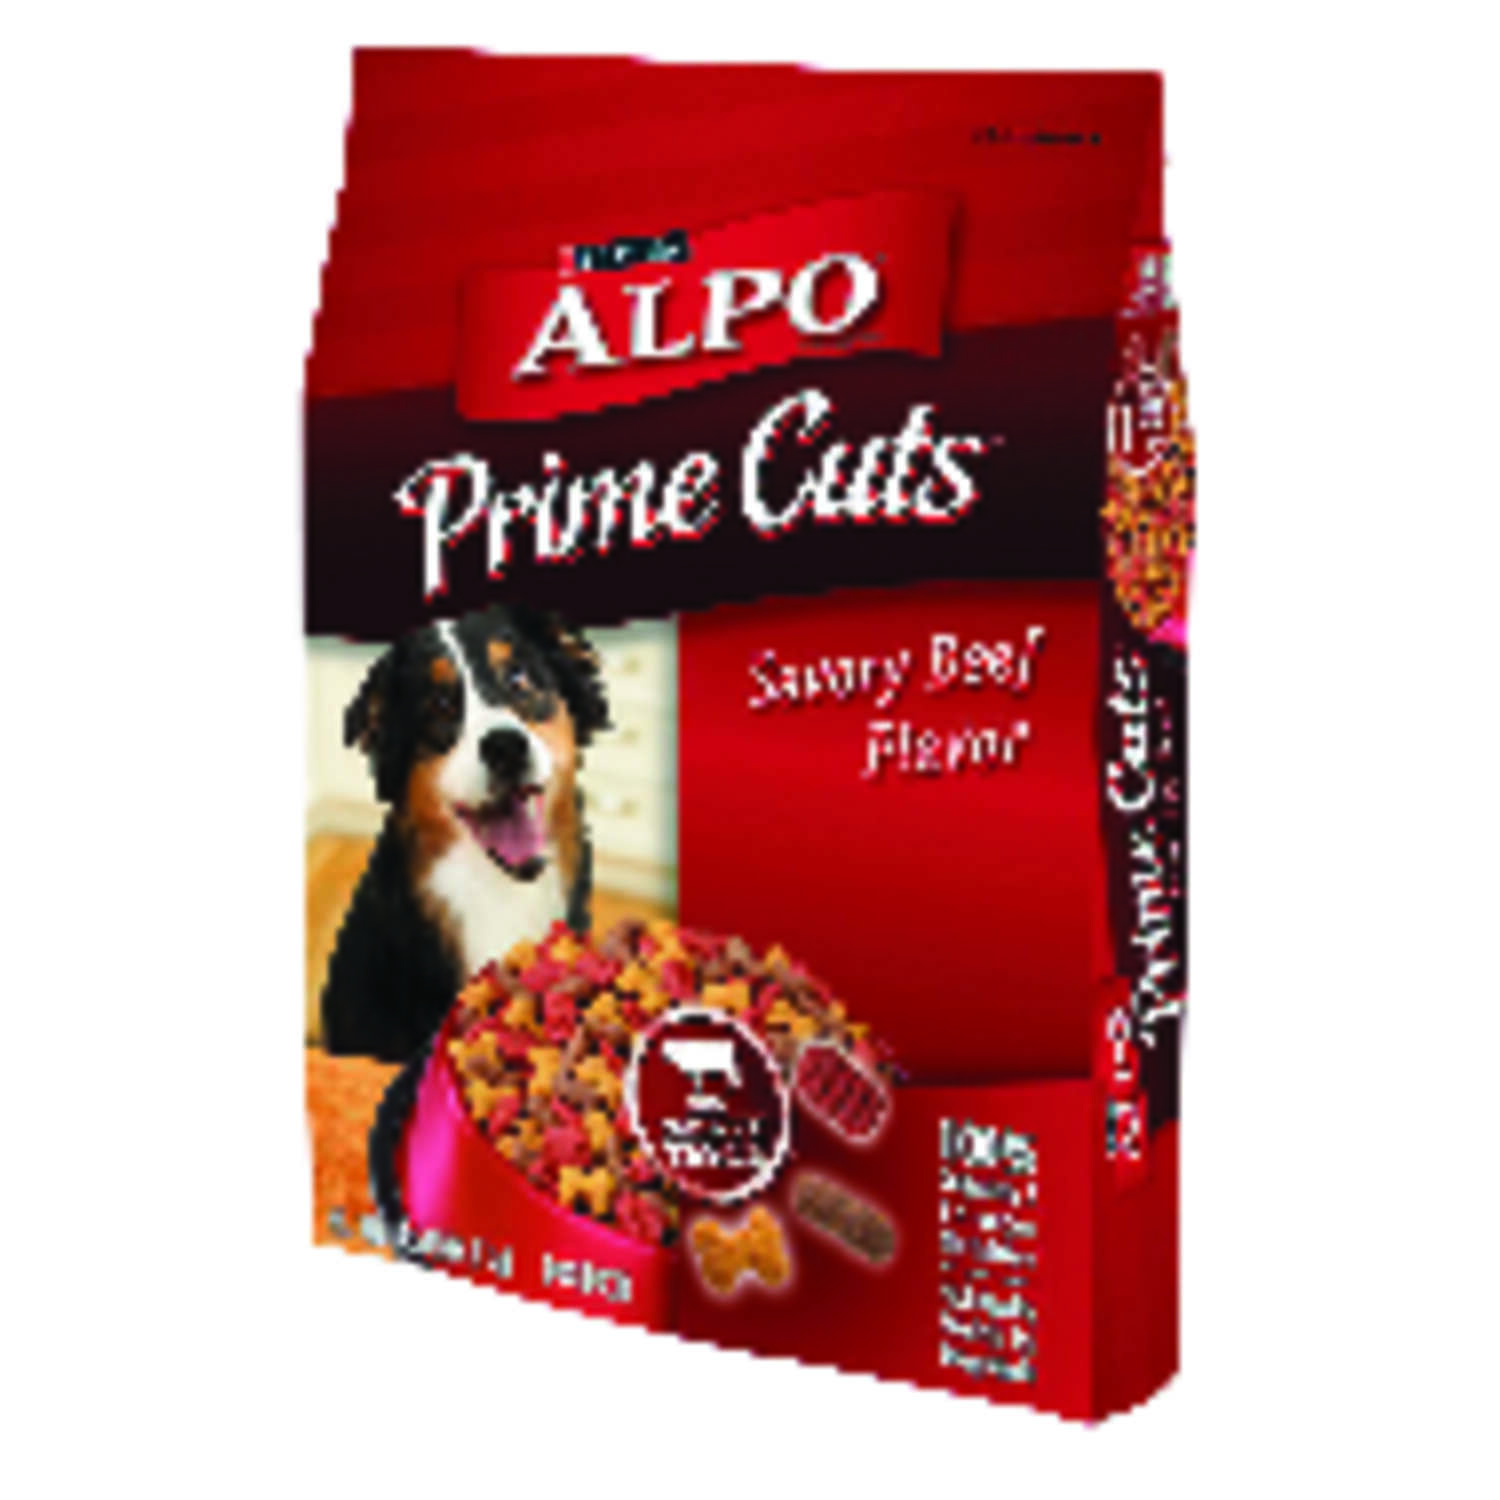 Purina  Alpo Prime Cuts  Savory Beef  Dry  Dog  Food  16 lb.